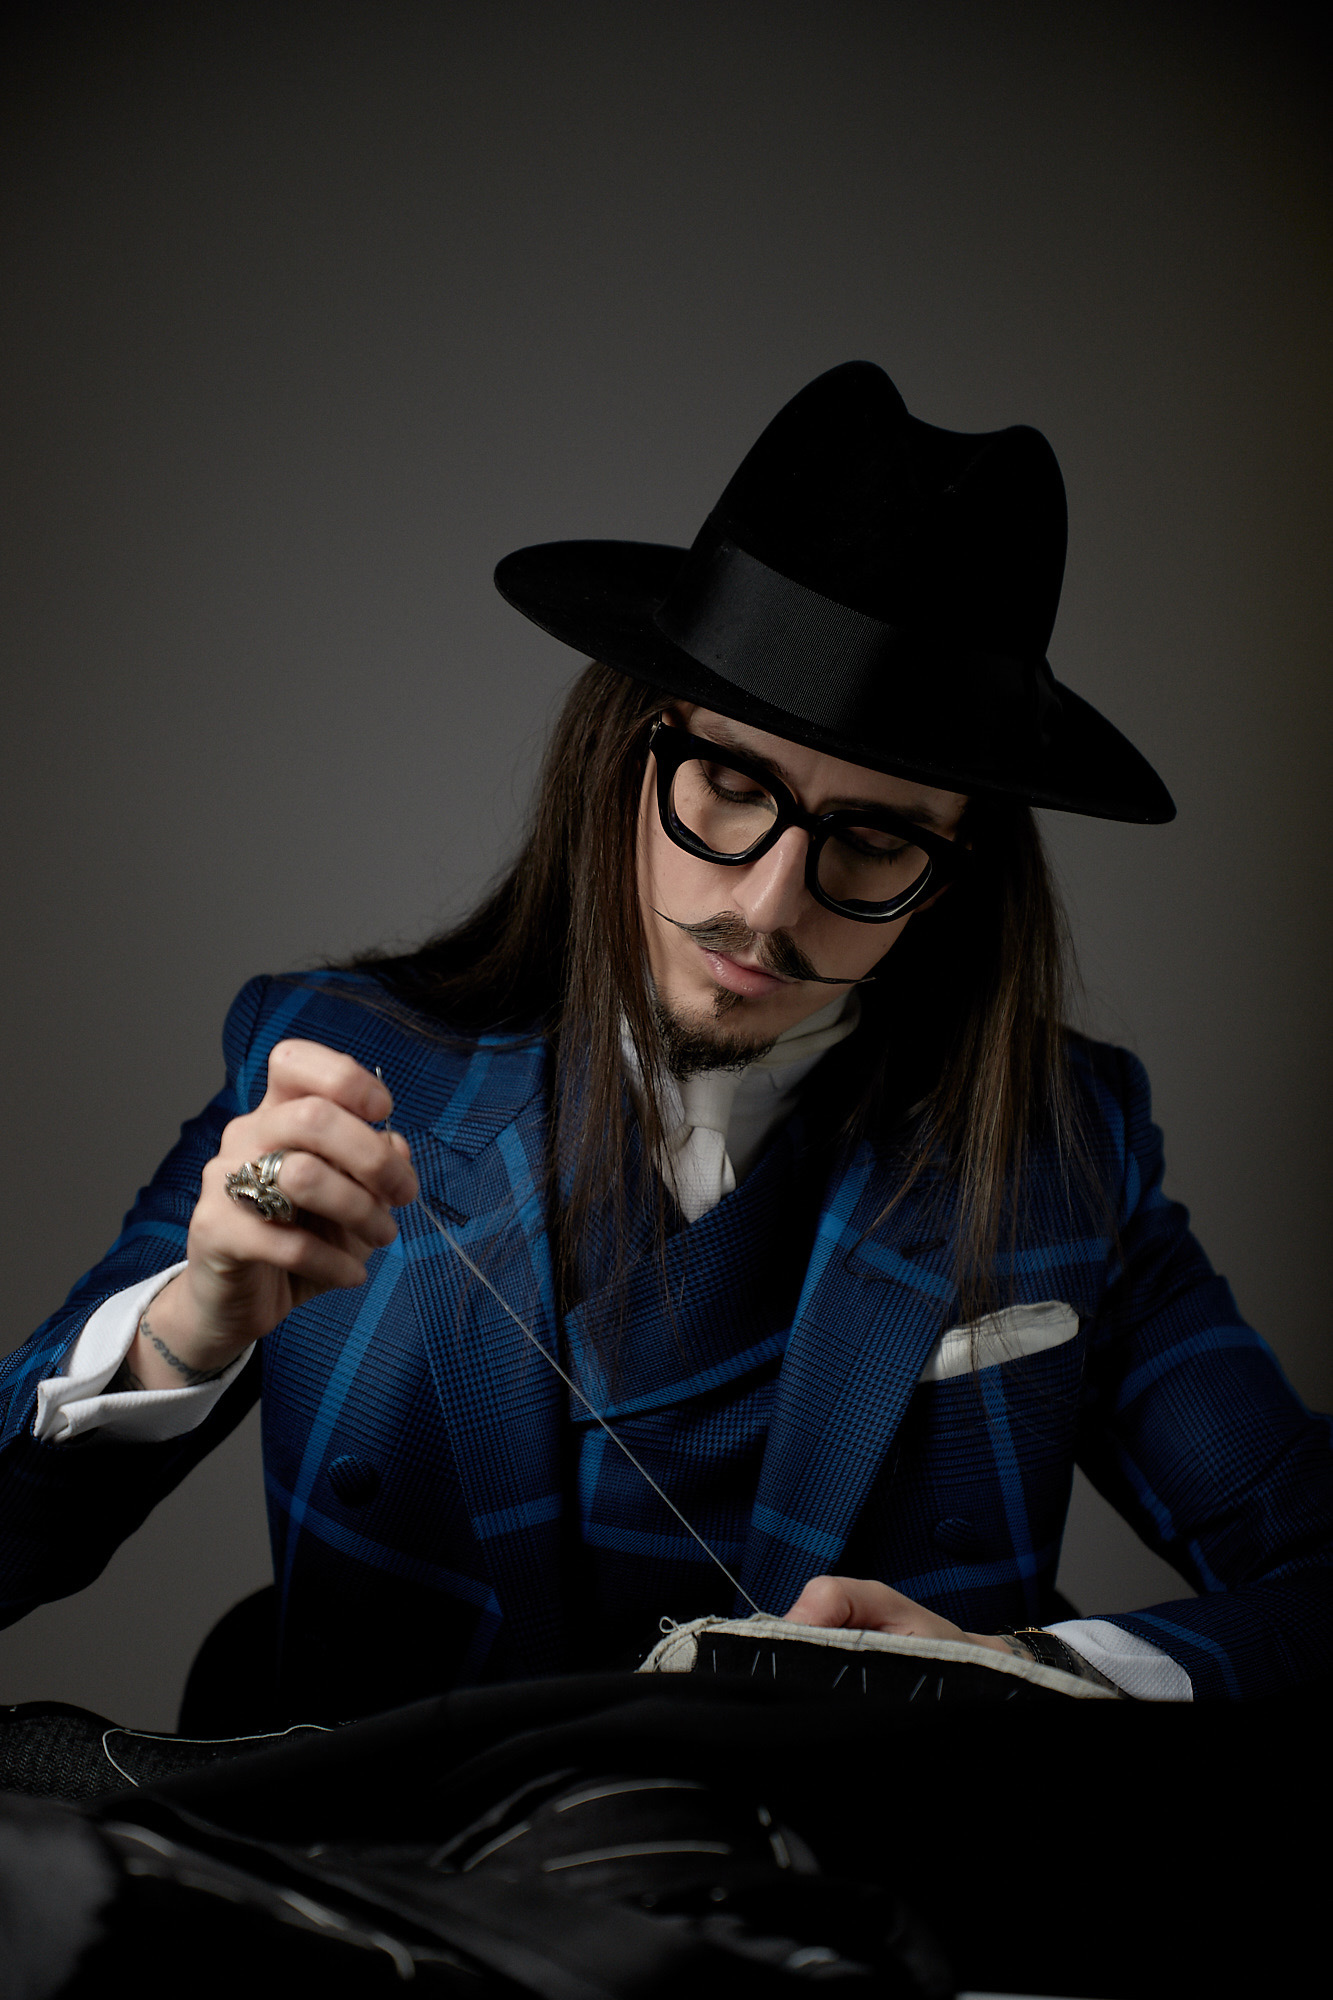 Joshua Kane, fashion designer and bespoke tailor